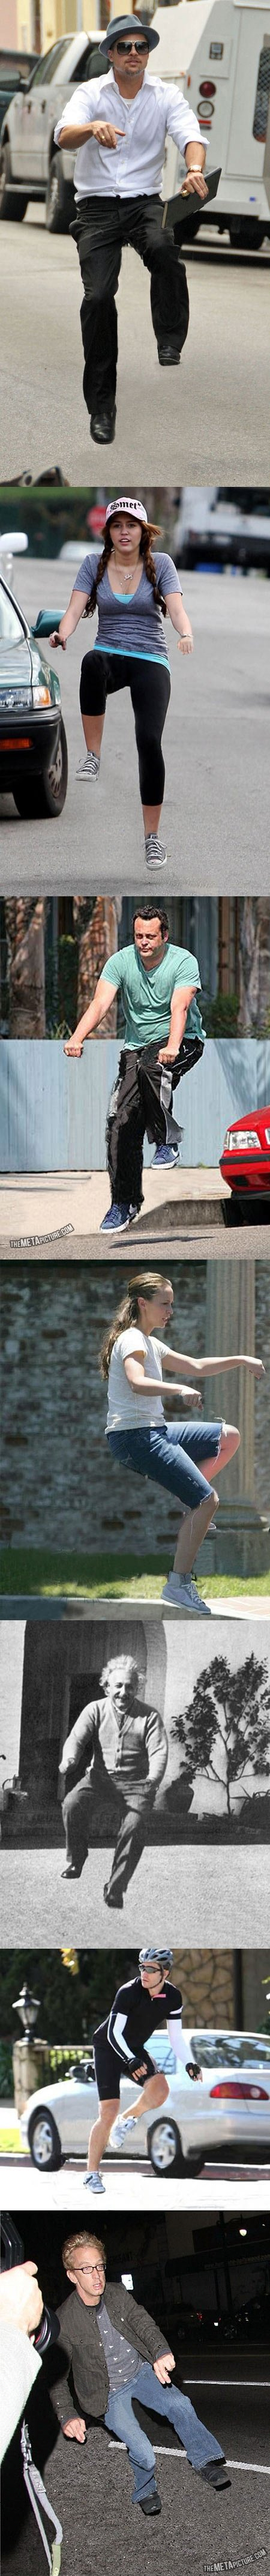 celebs+without+their+bikes_53b73c_4494411